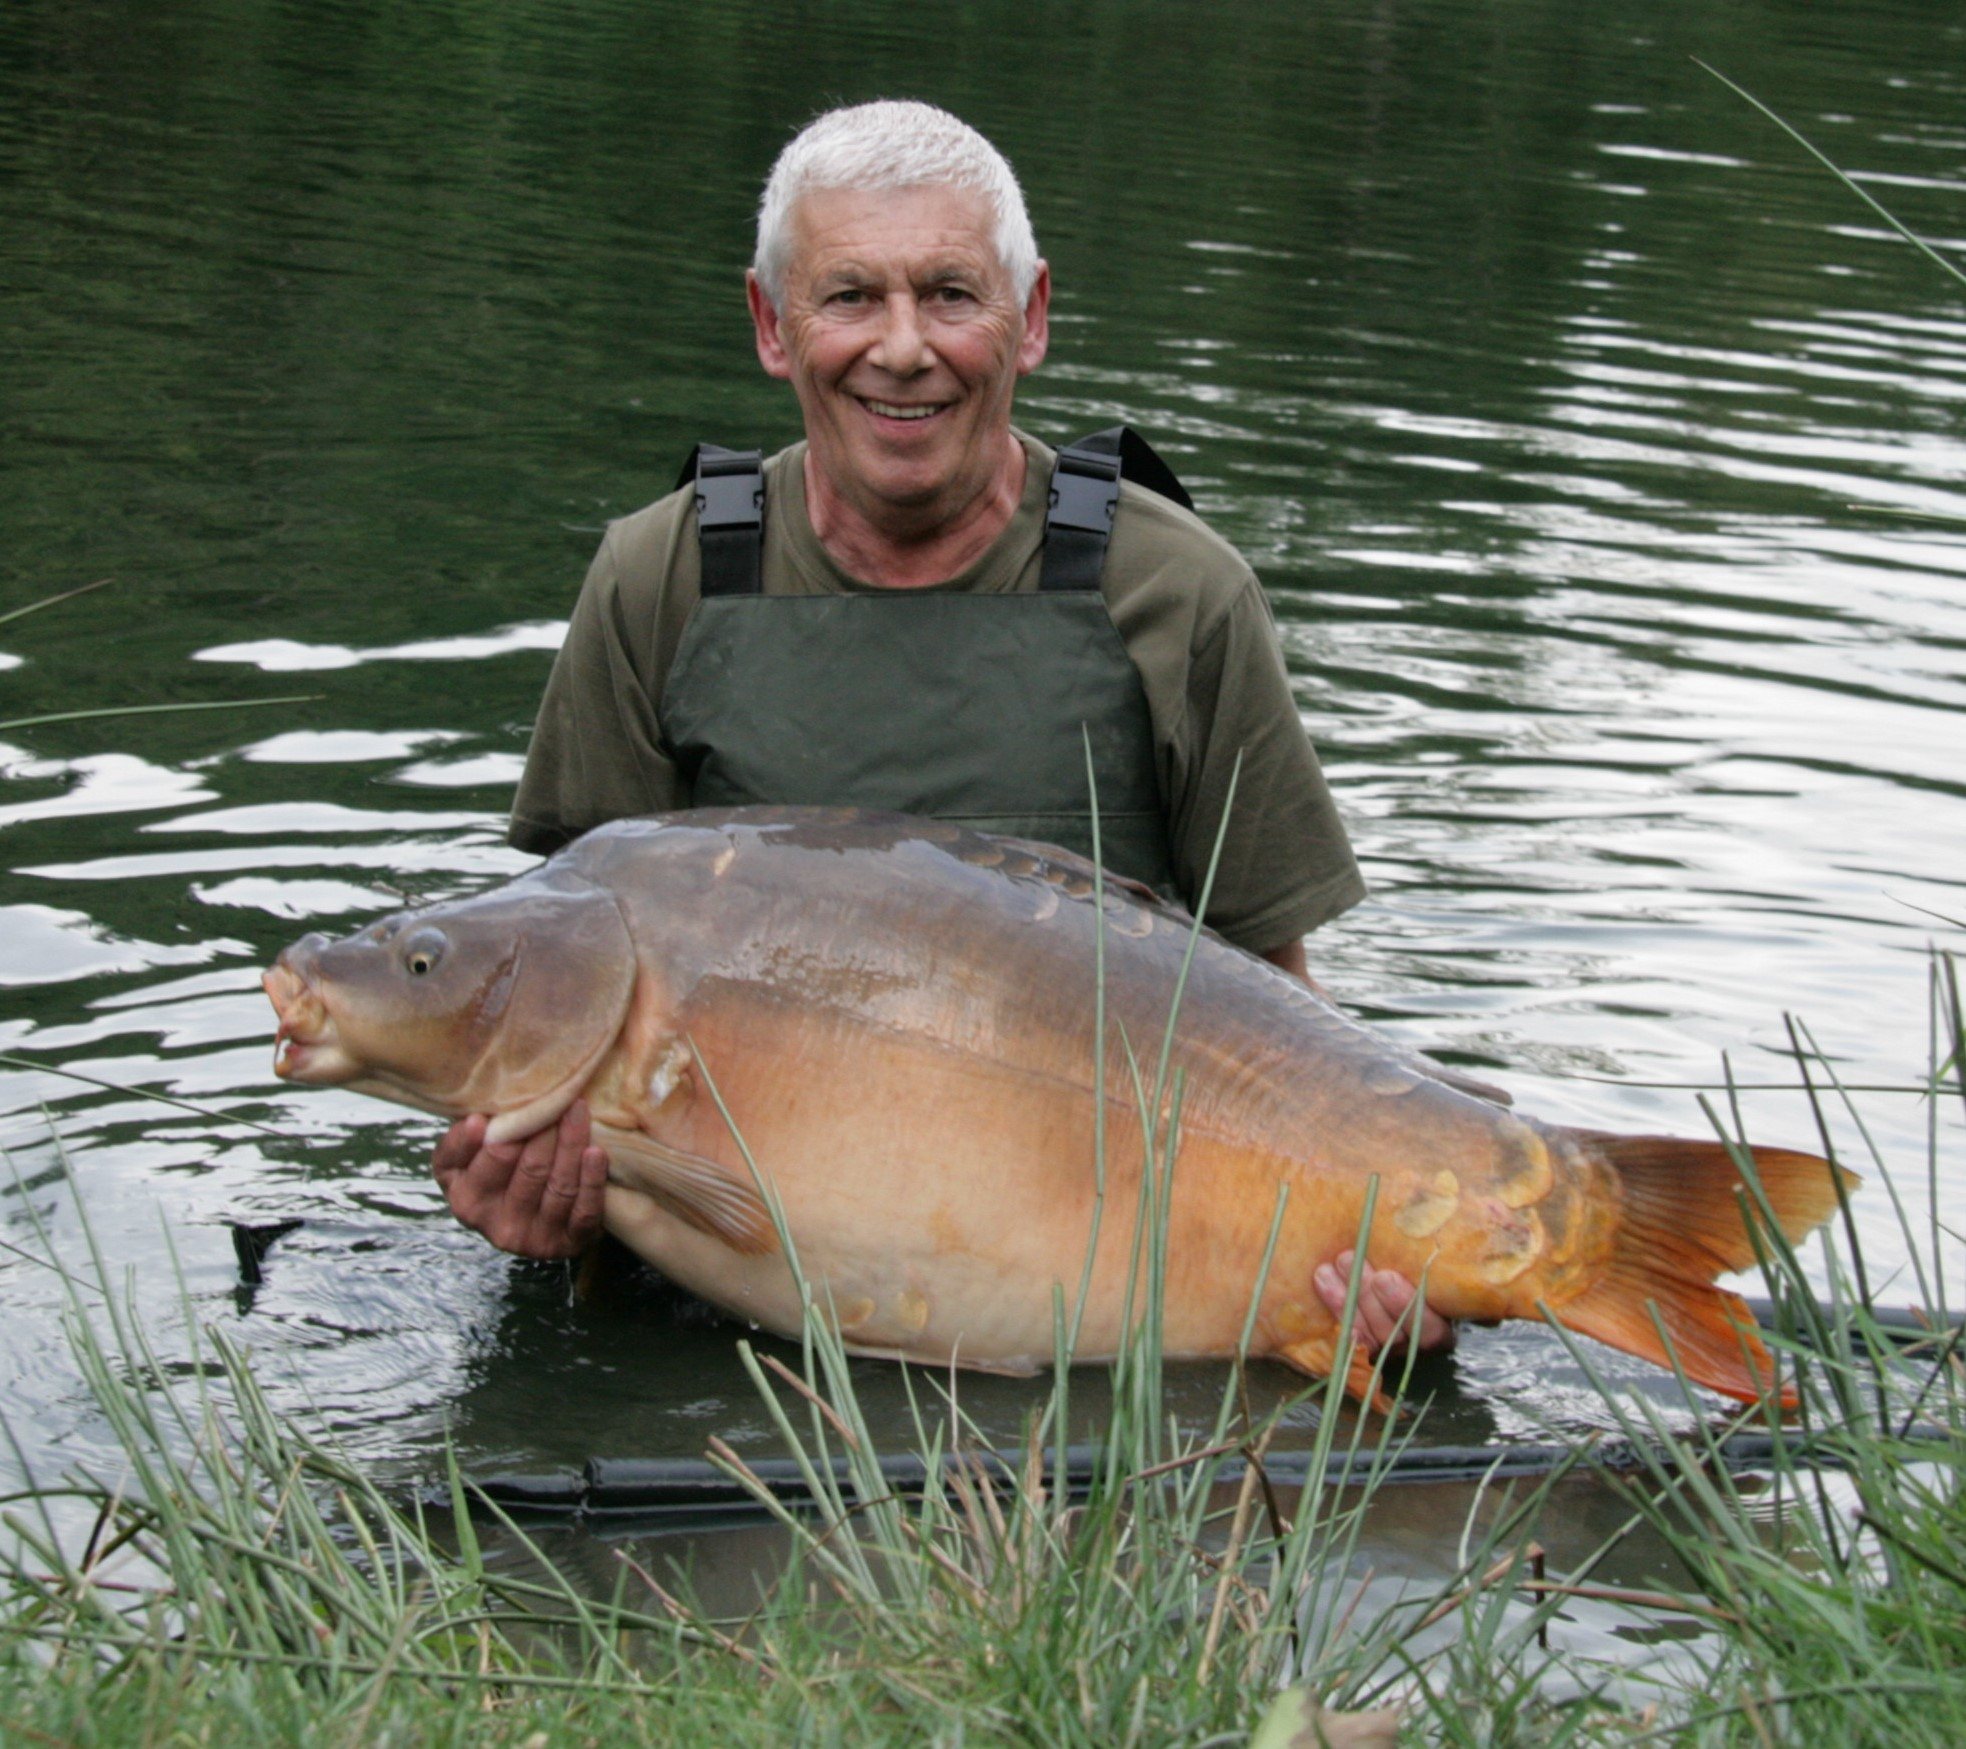 https://www.puyravaudcarp.com/wp-content/uploads/2016/10/49.073.jpg